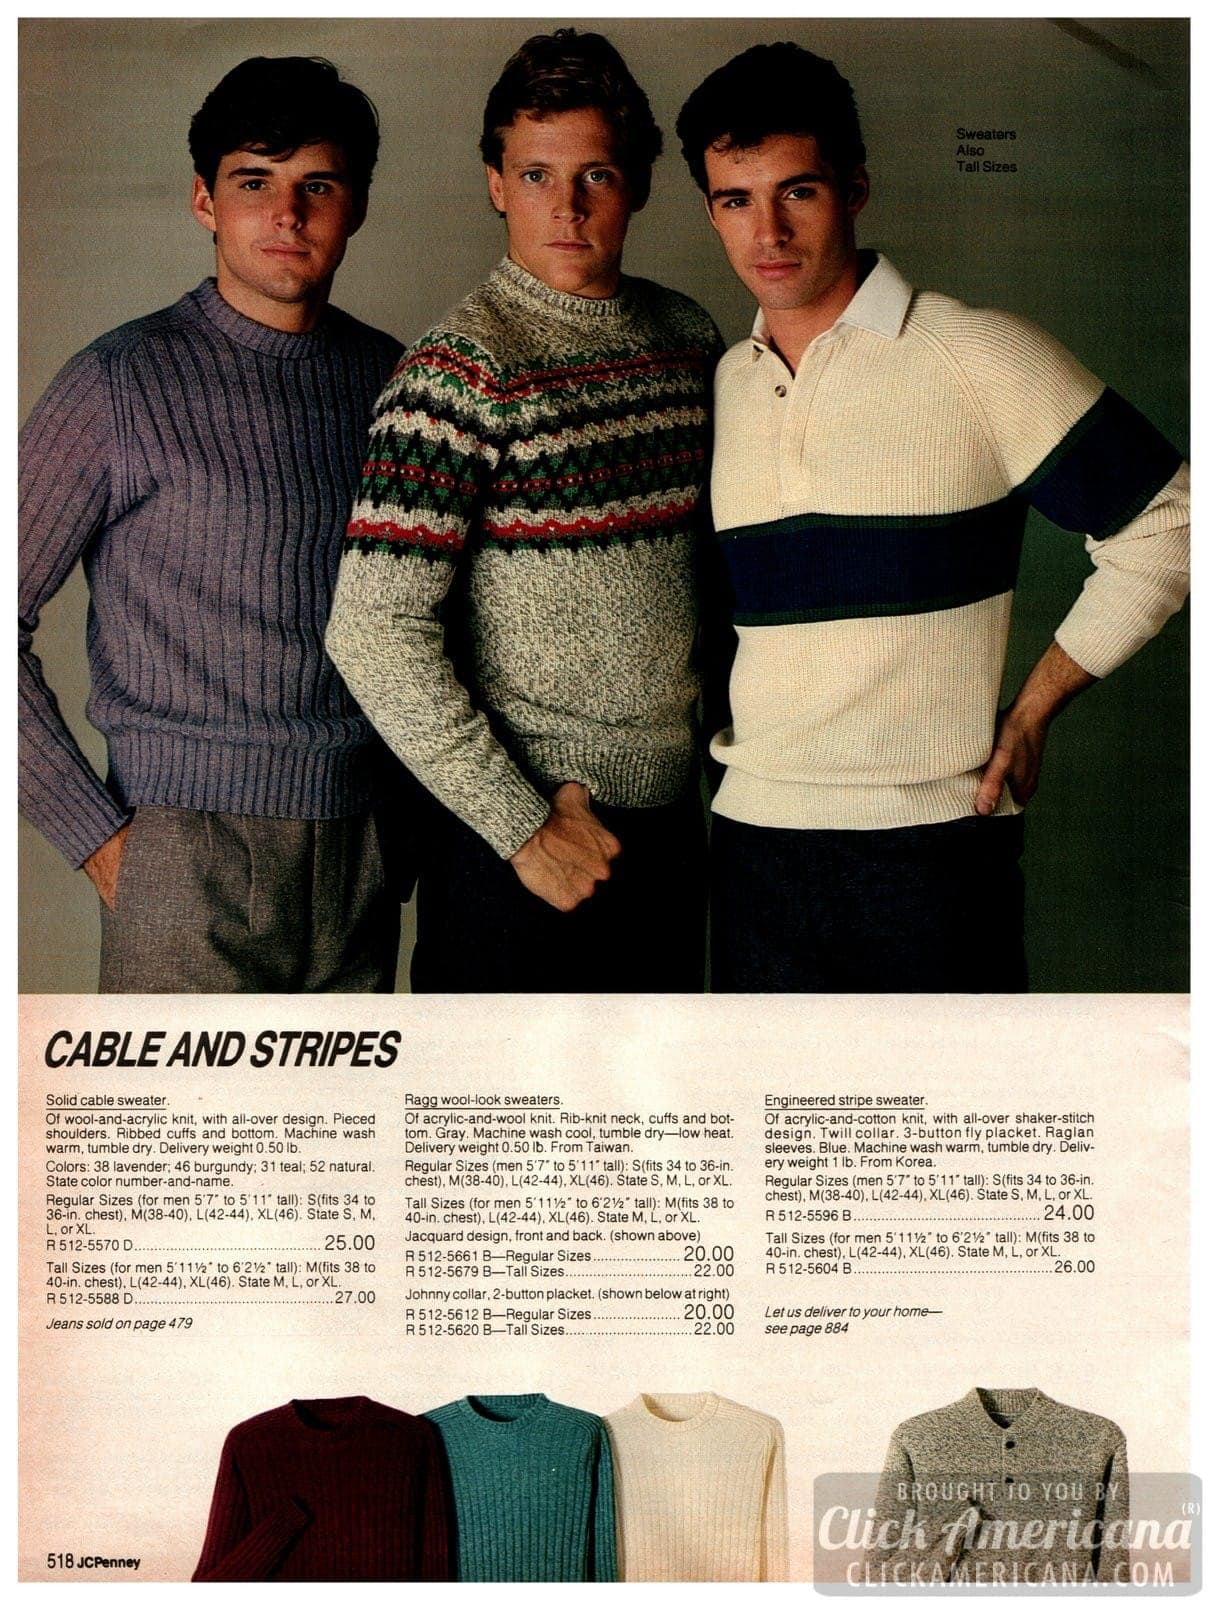 Cable-knit and striped sweaters for men